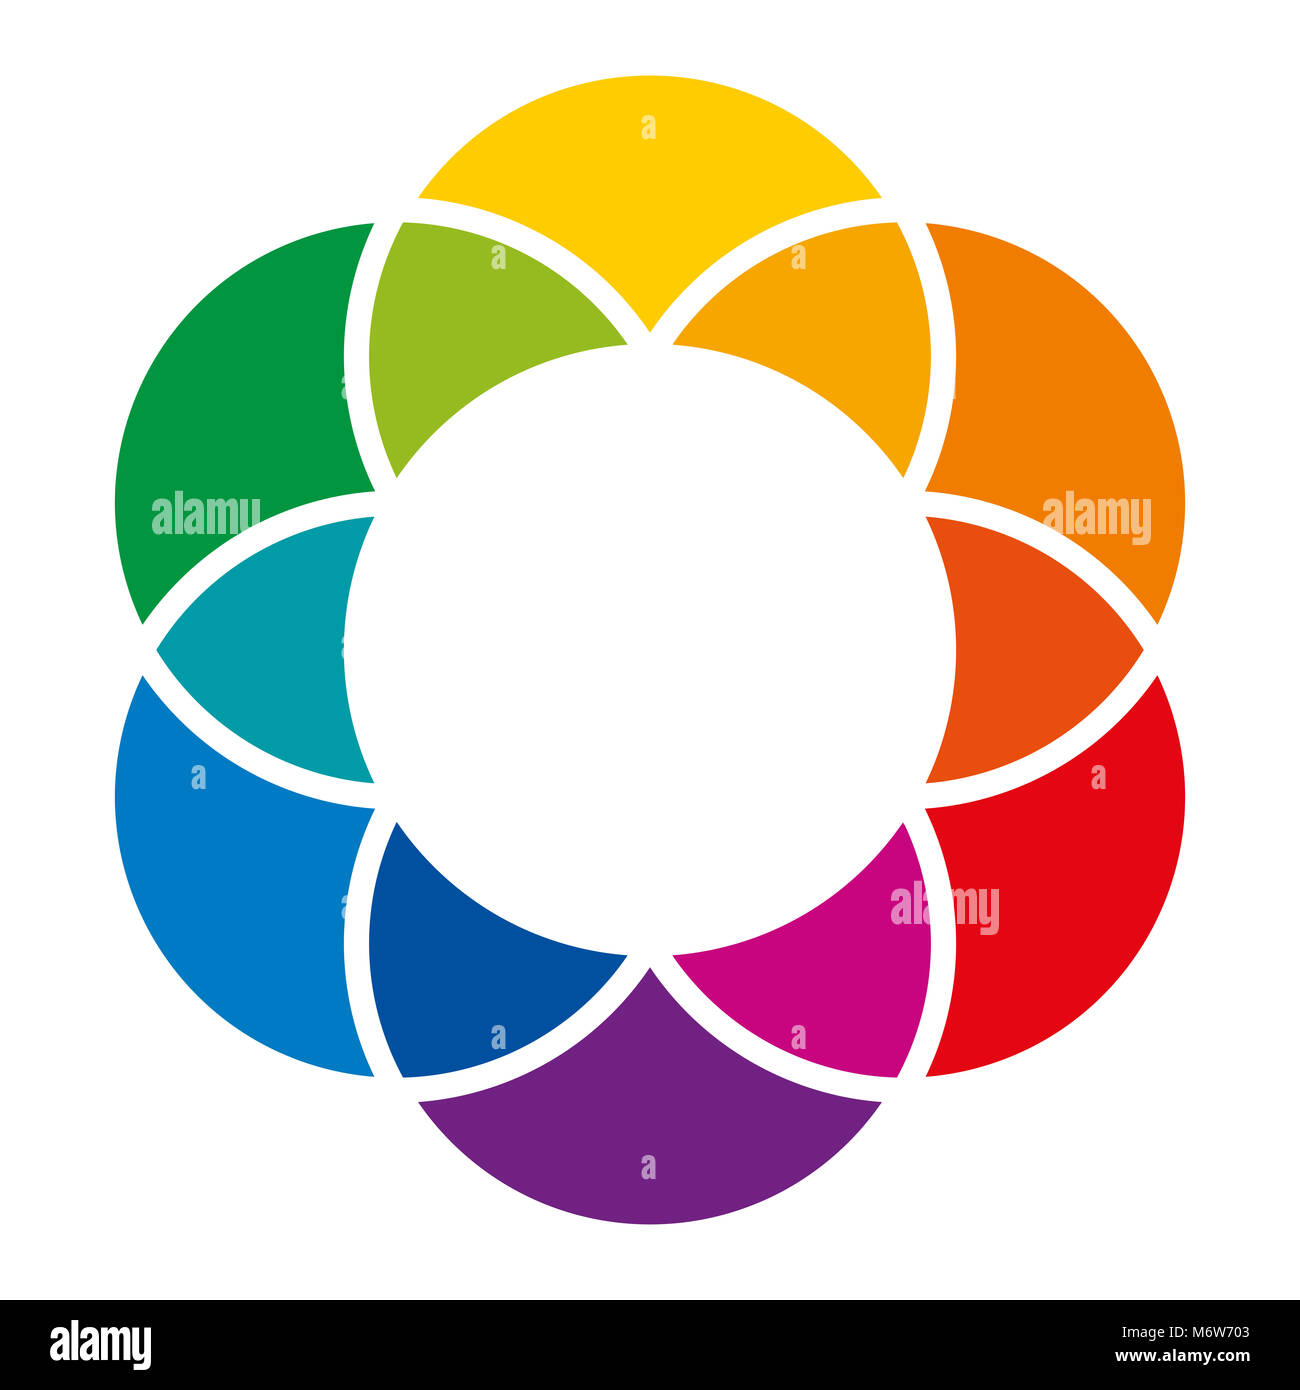 Rainbow Colored Flower And Color Wheel Overlapping Circles Lead To